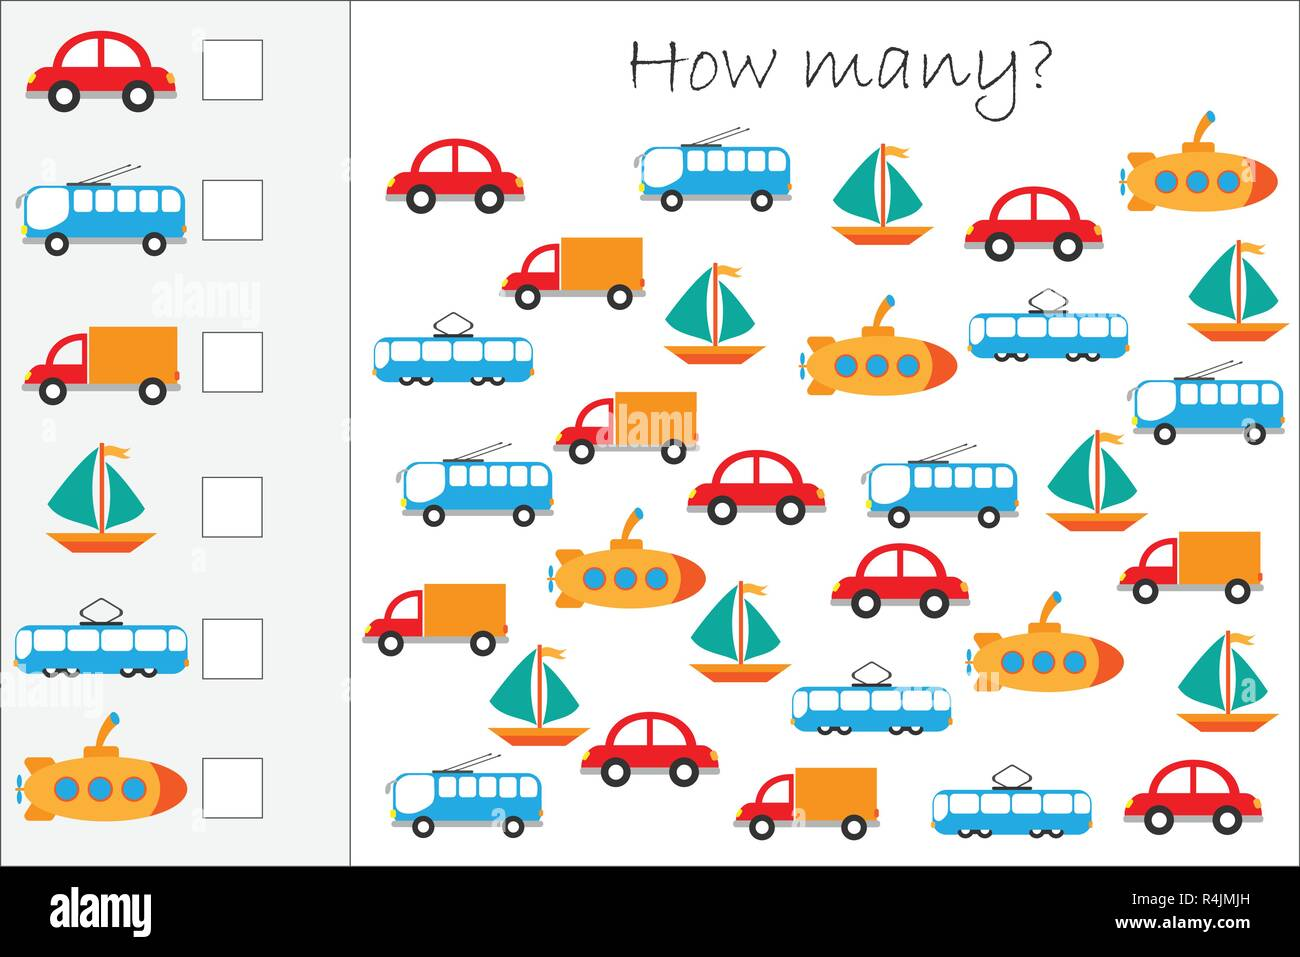 Transportation Worksheet For Kindergarten Addition